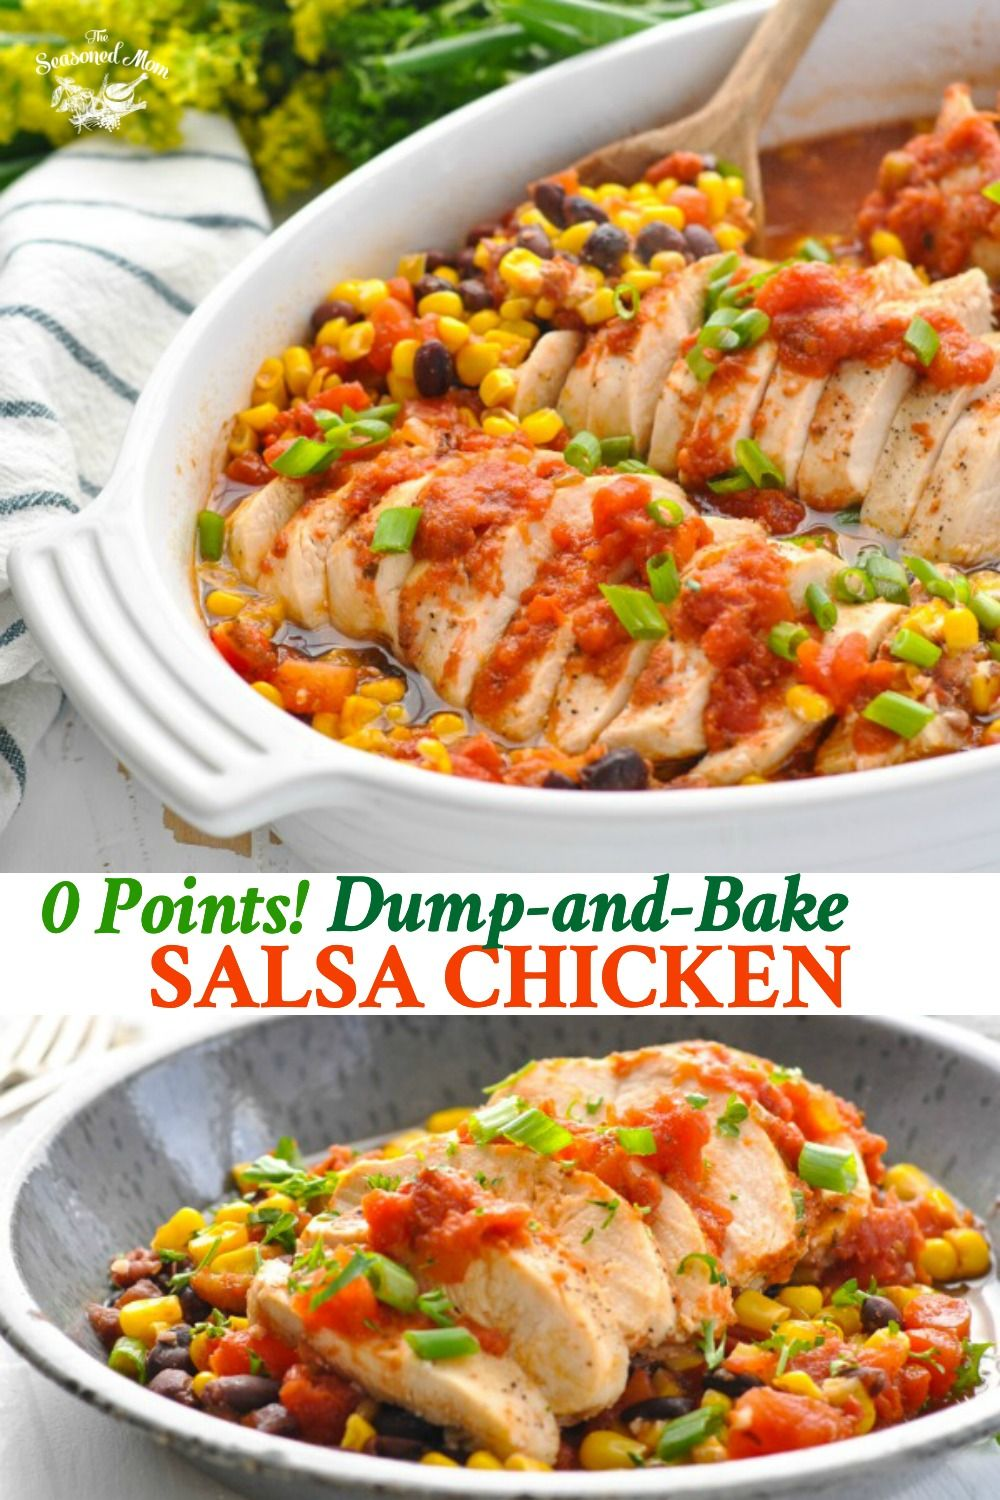 Dump-and-Bake Salsa Chicken images